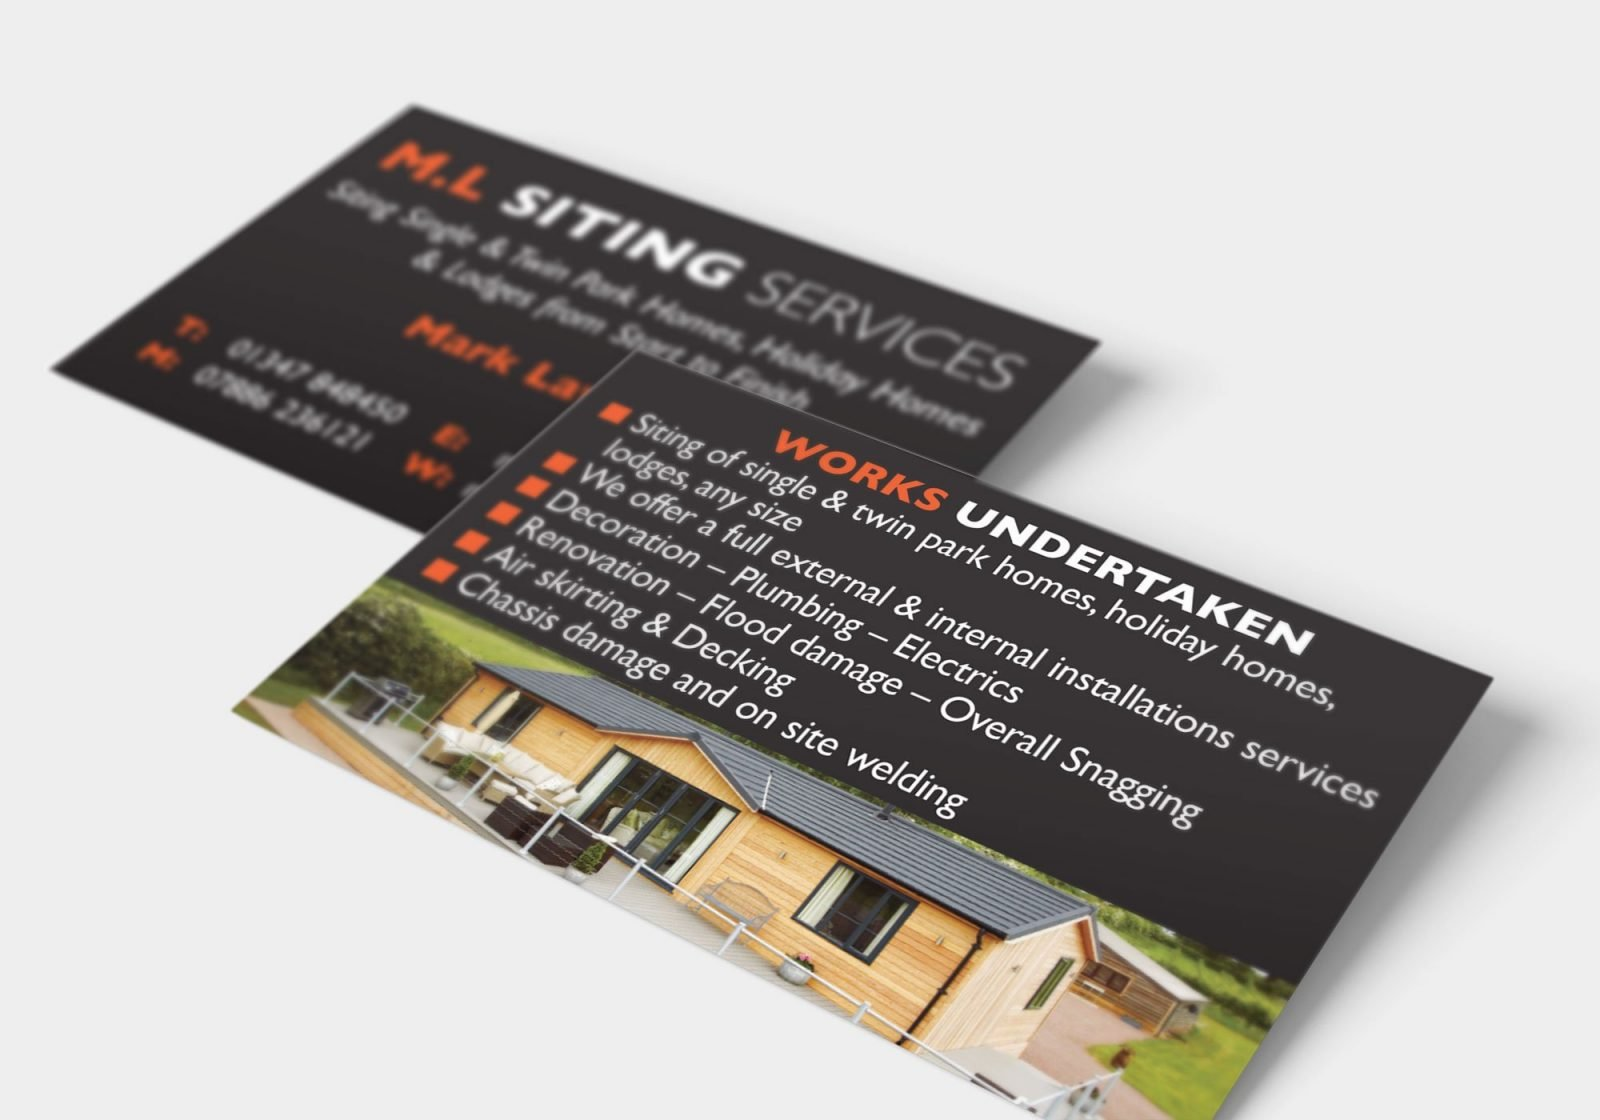 Business card design for M.L Siting Services, showing the front and back design